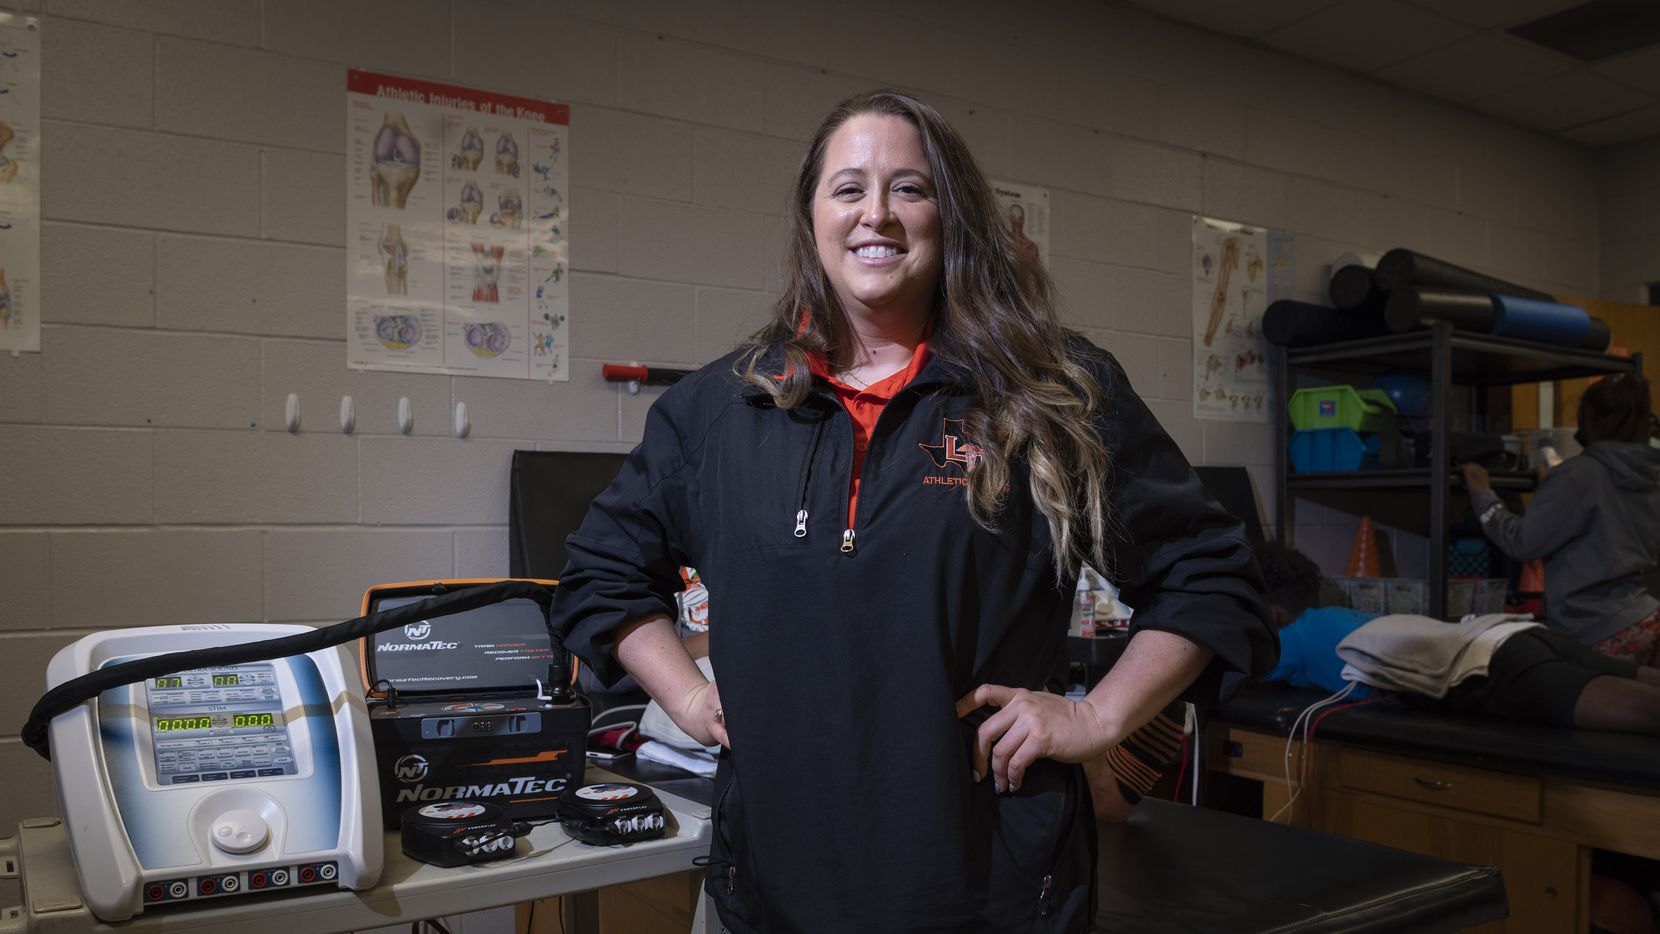 Jordan Hart, head athletic trainer for Lancaster High School, stands next to an ultra sound and electric stimulation device used on muscles, inside the school's athletic training room in Dallas, on Tuesday, March 09, 2021.